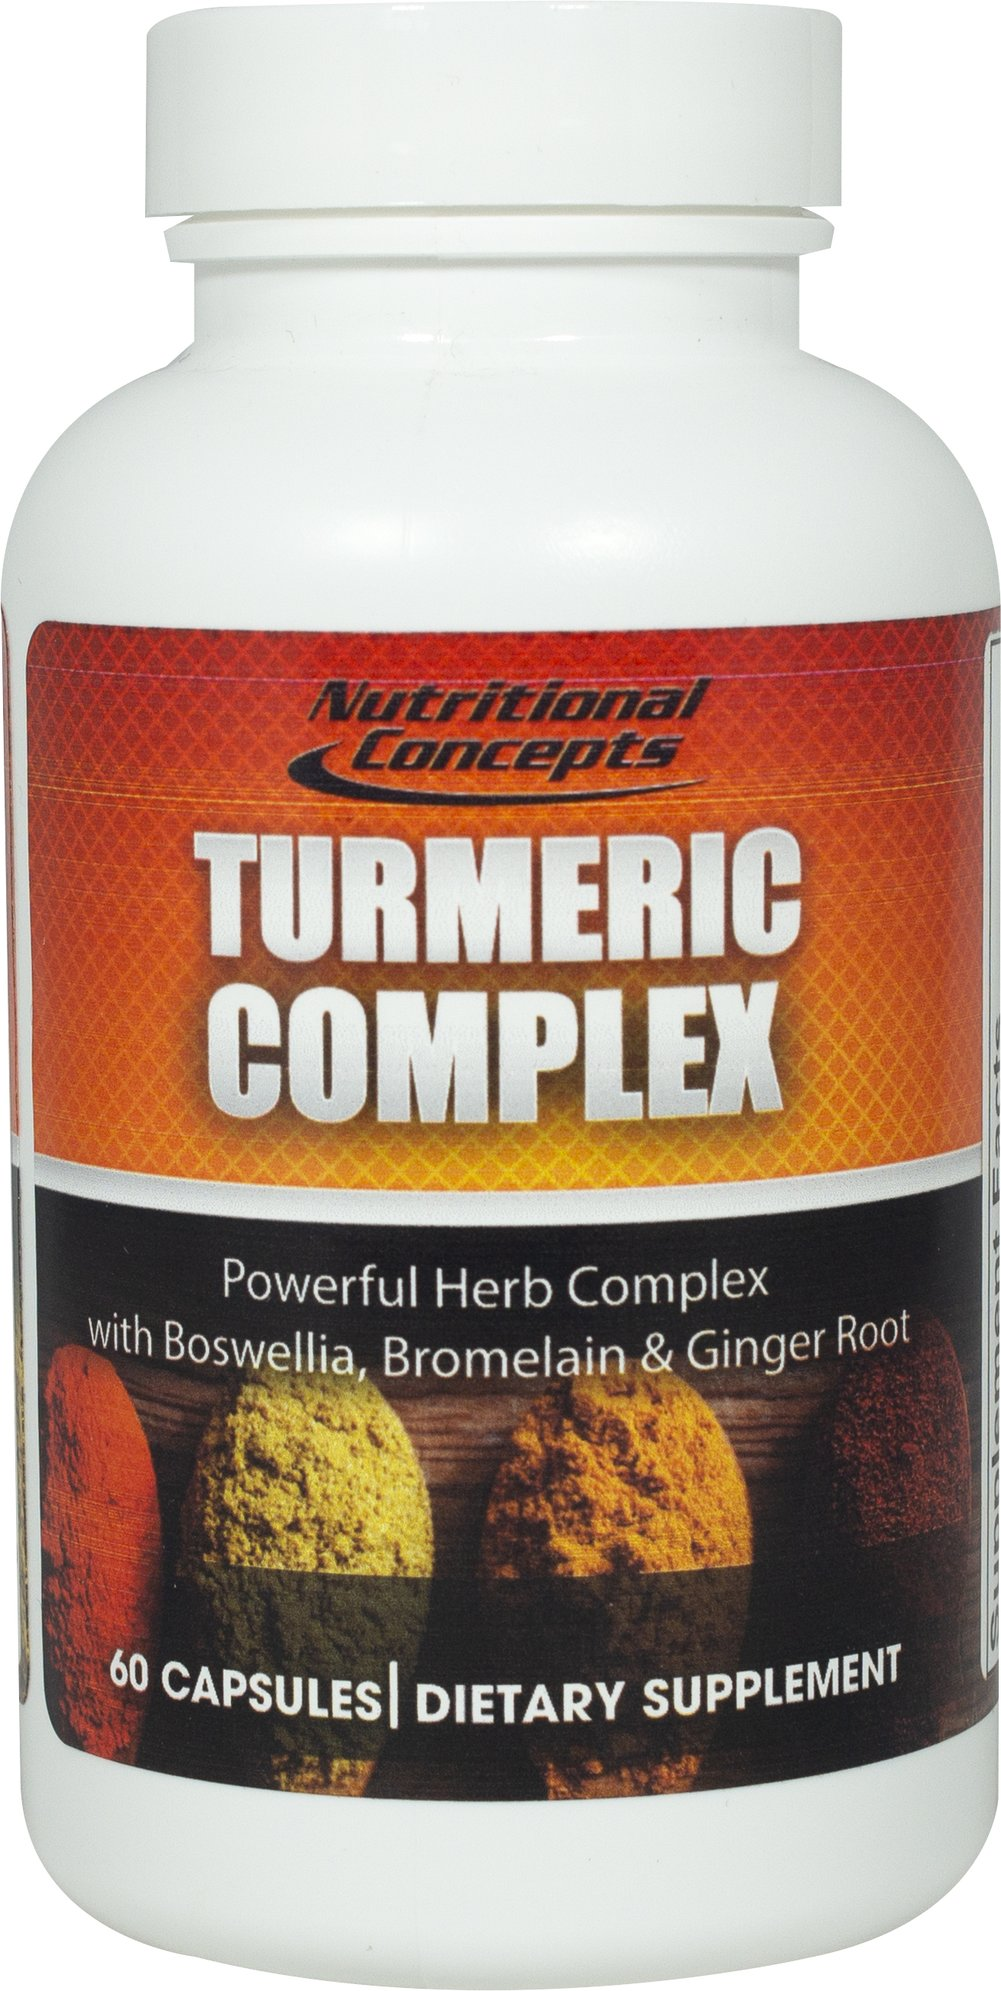 Standardized Turmeric Complex